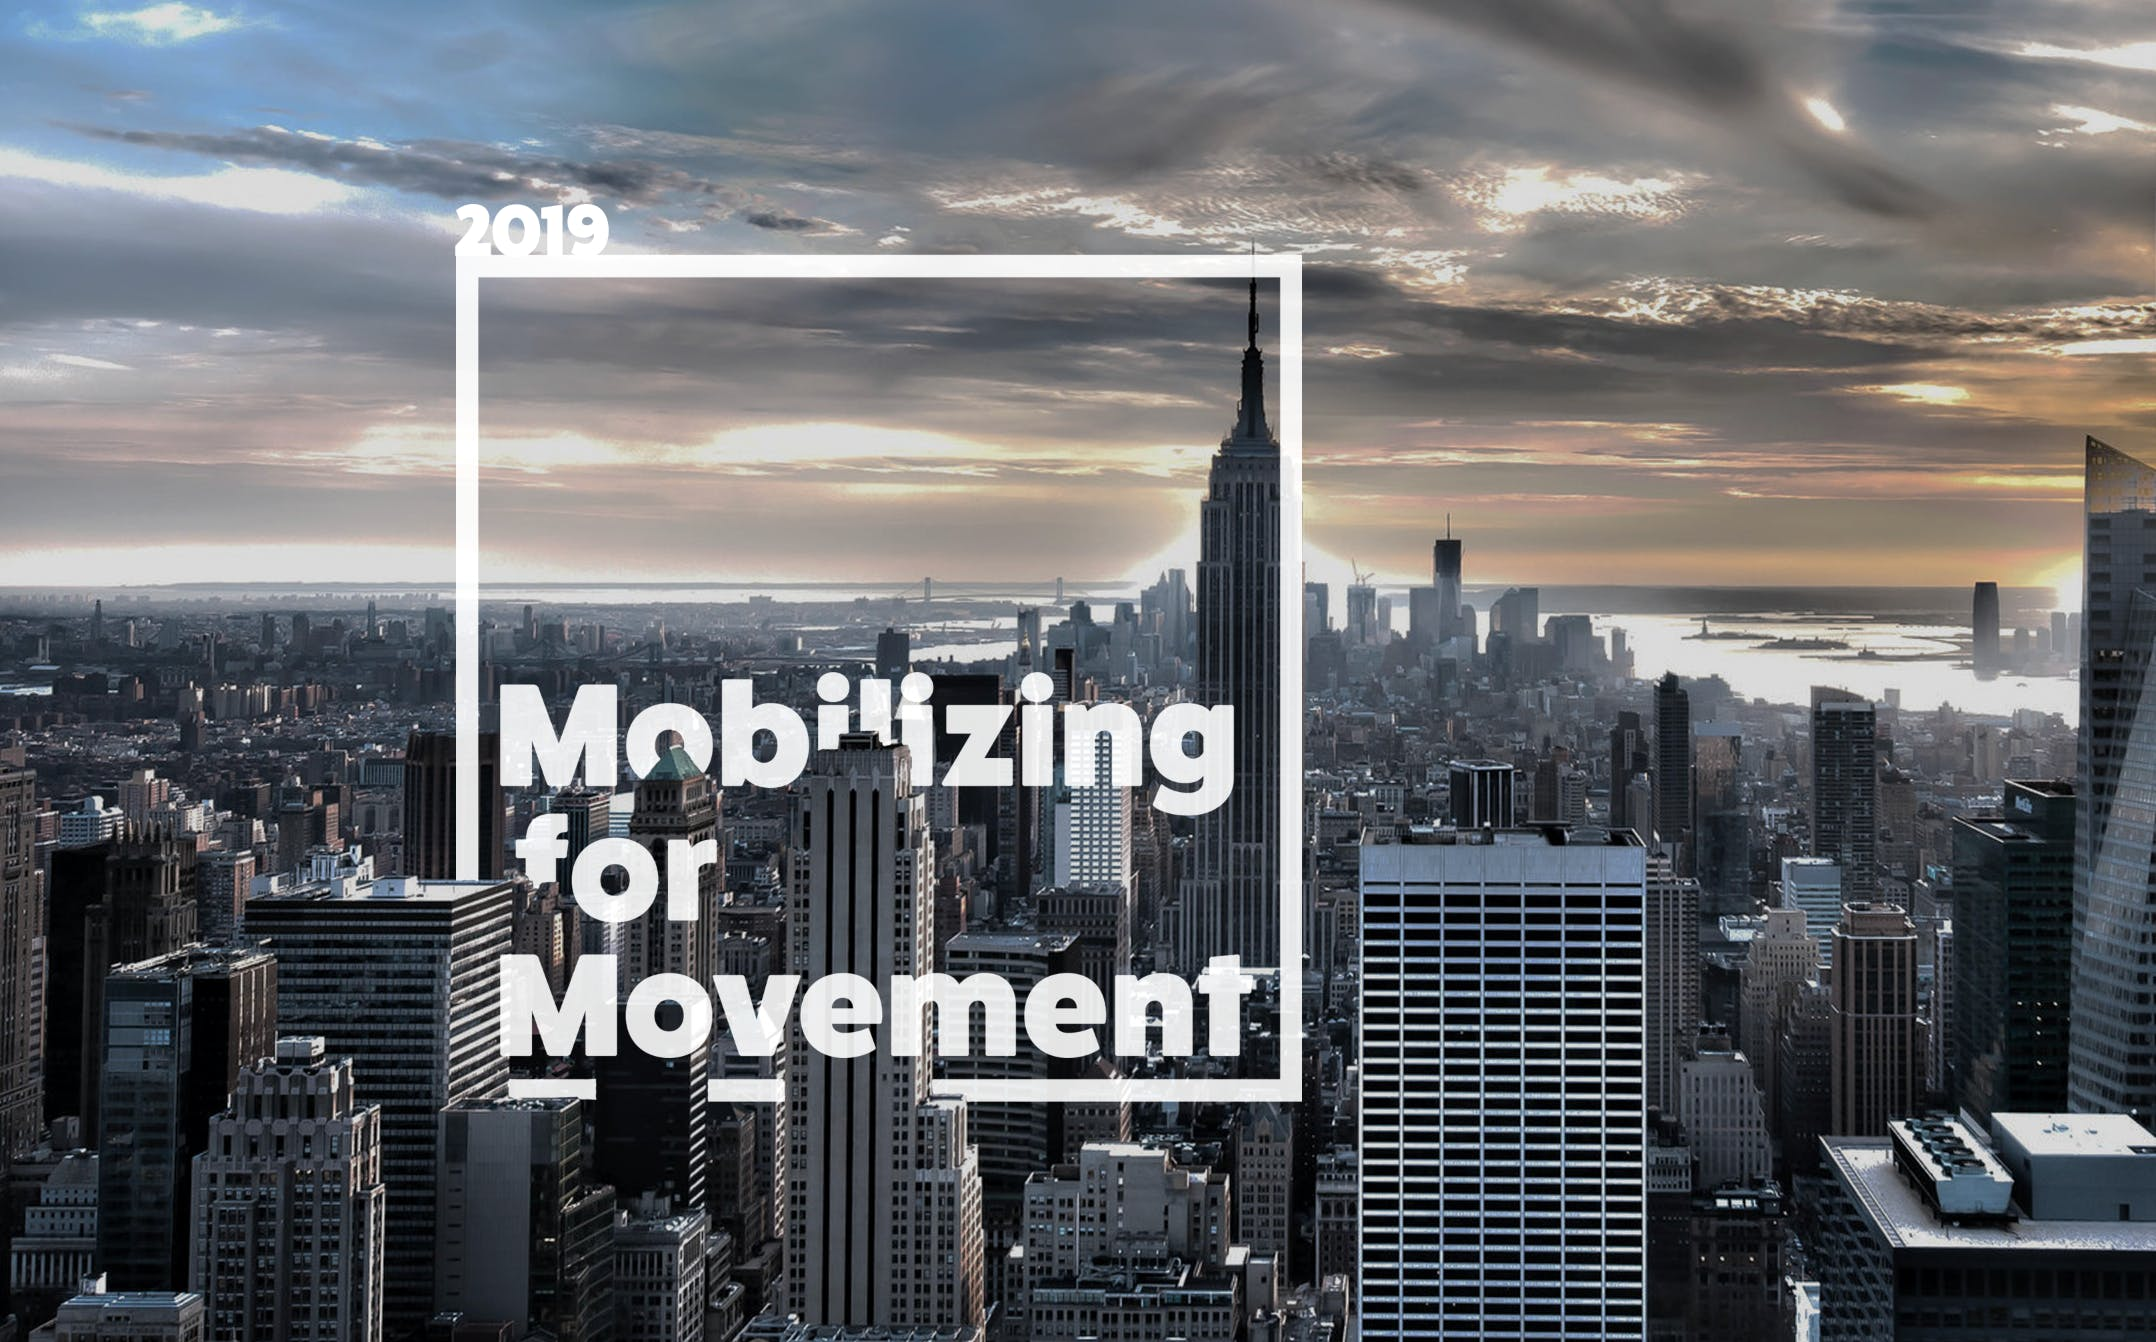 Mobilizing for Movement 2019